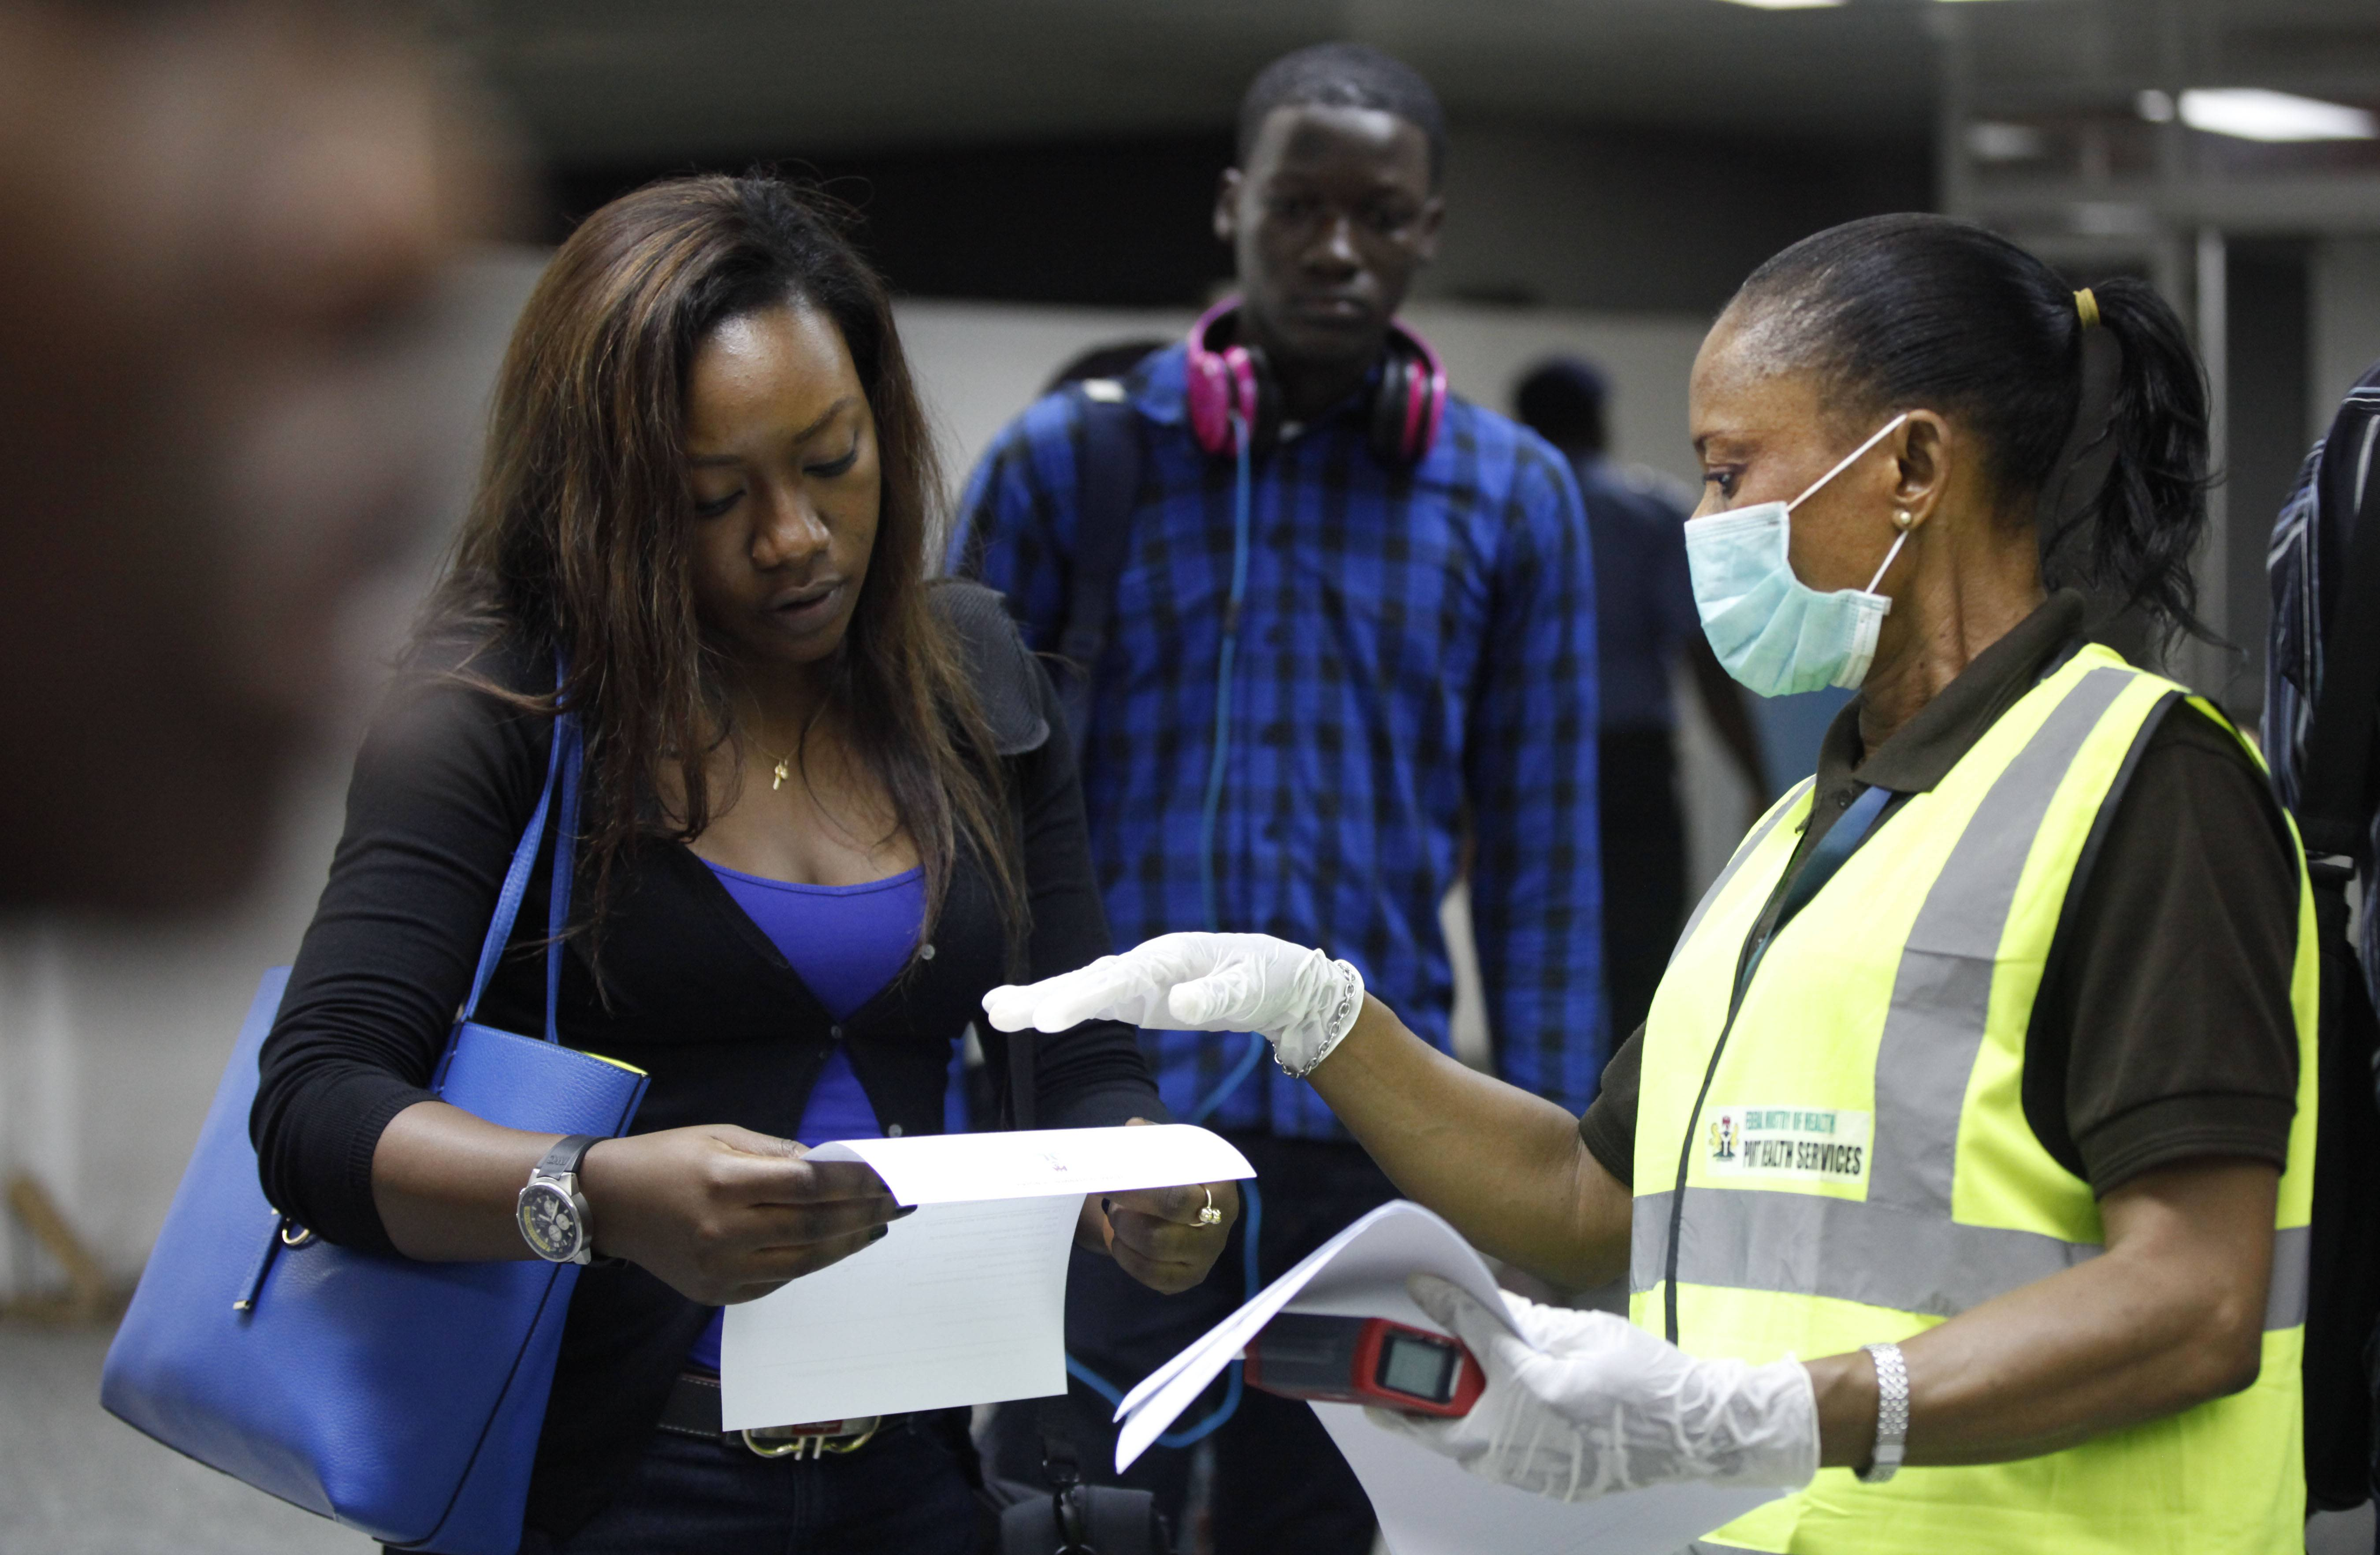 A Nigerian port health official speaks to a passenger Wednesday at the arrivals hall of Murtala Muhammed International Airport in Lagos, Nigeria. A Nigerian nurse who treated a man with Ebola is now dead and five others are sick with one of the world's most virulent diseases, authorities said Wednesday as the death toll rose to at least 932 people in four West African countries.